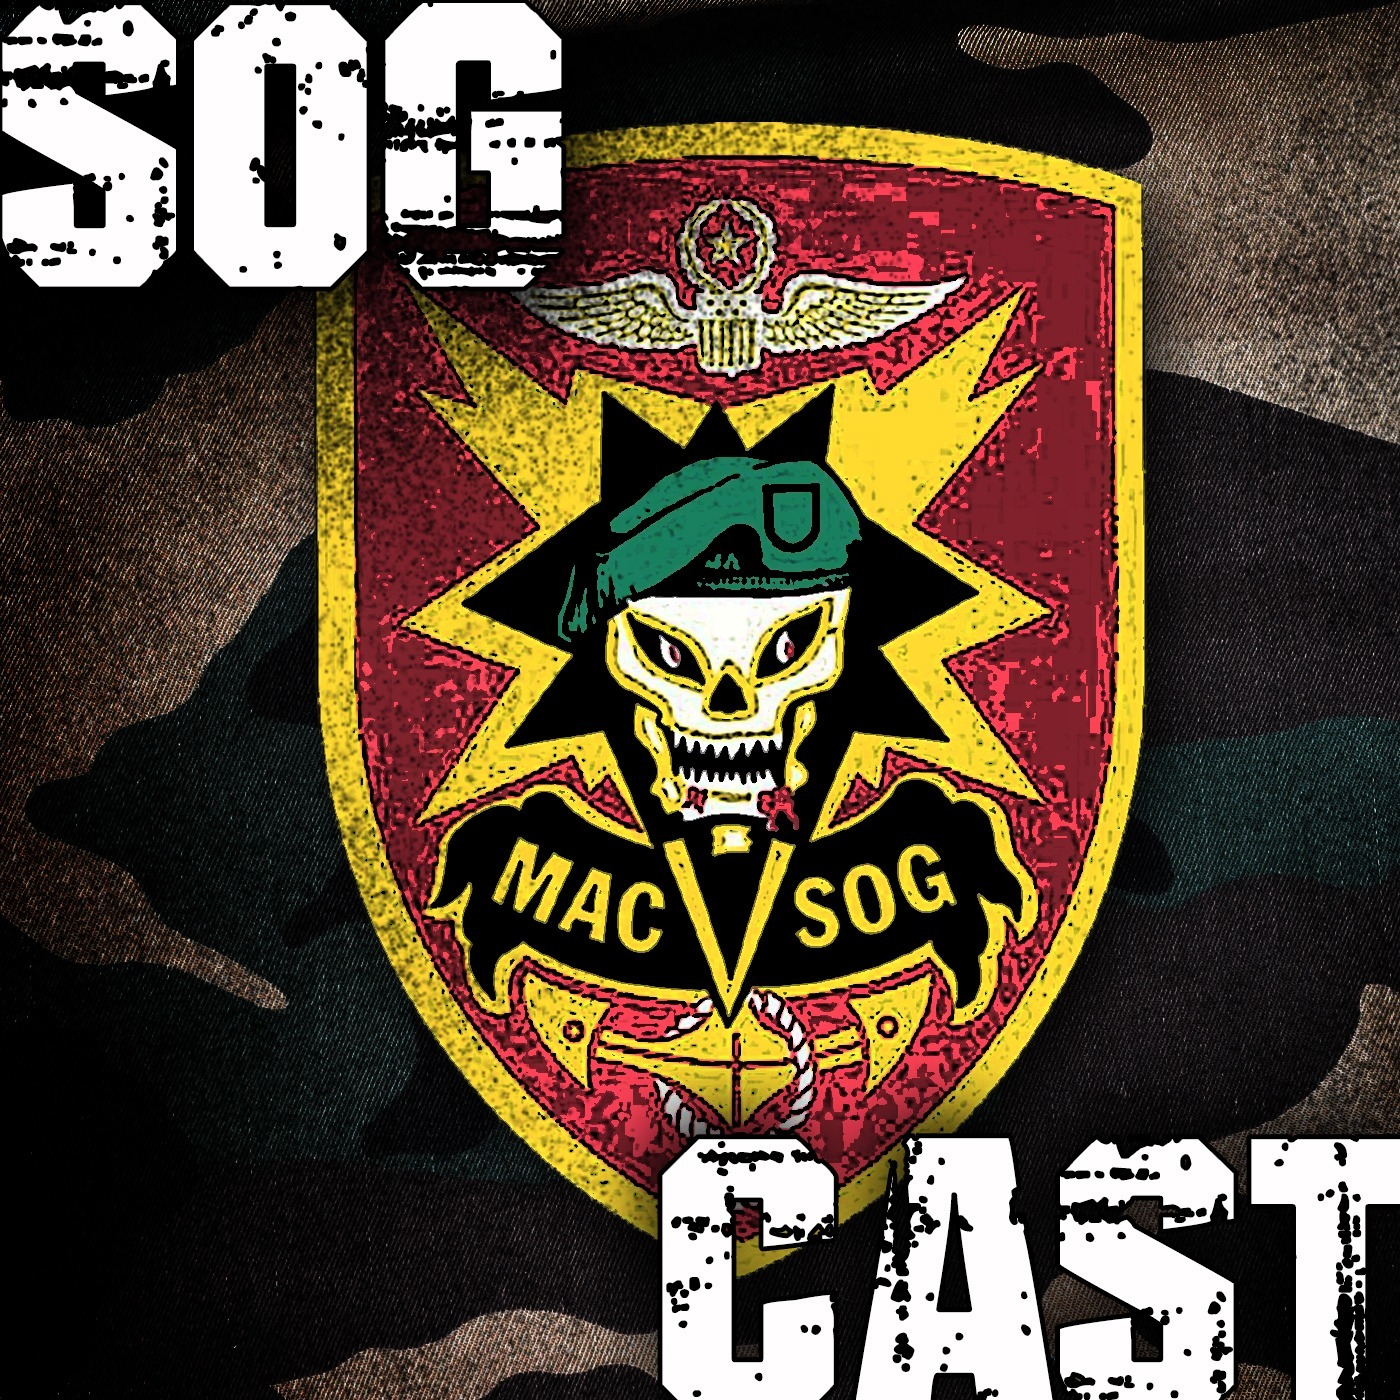 004: Untold Stories. SOG Recon at CCS. With Marcus Whitt